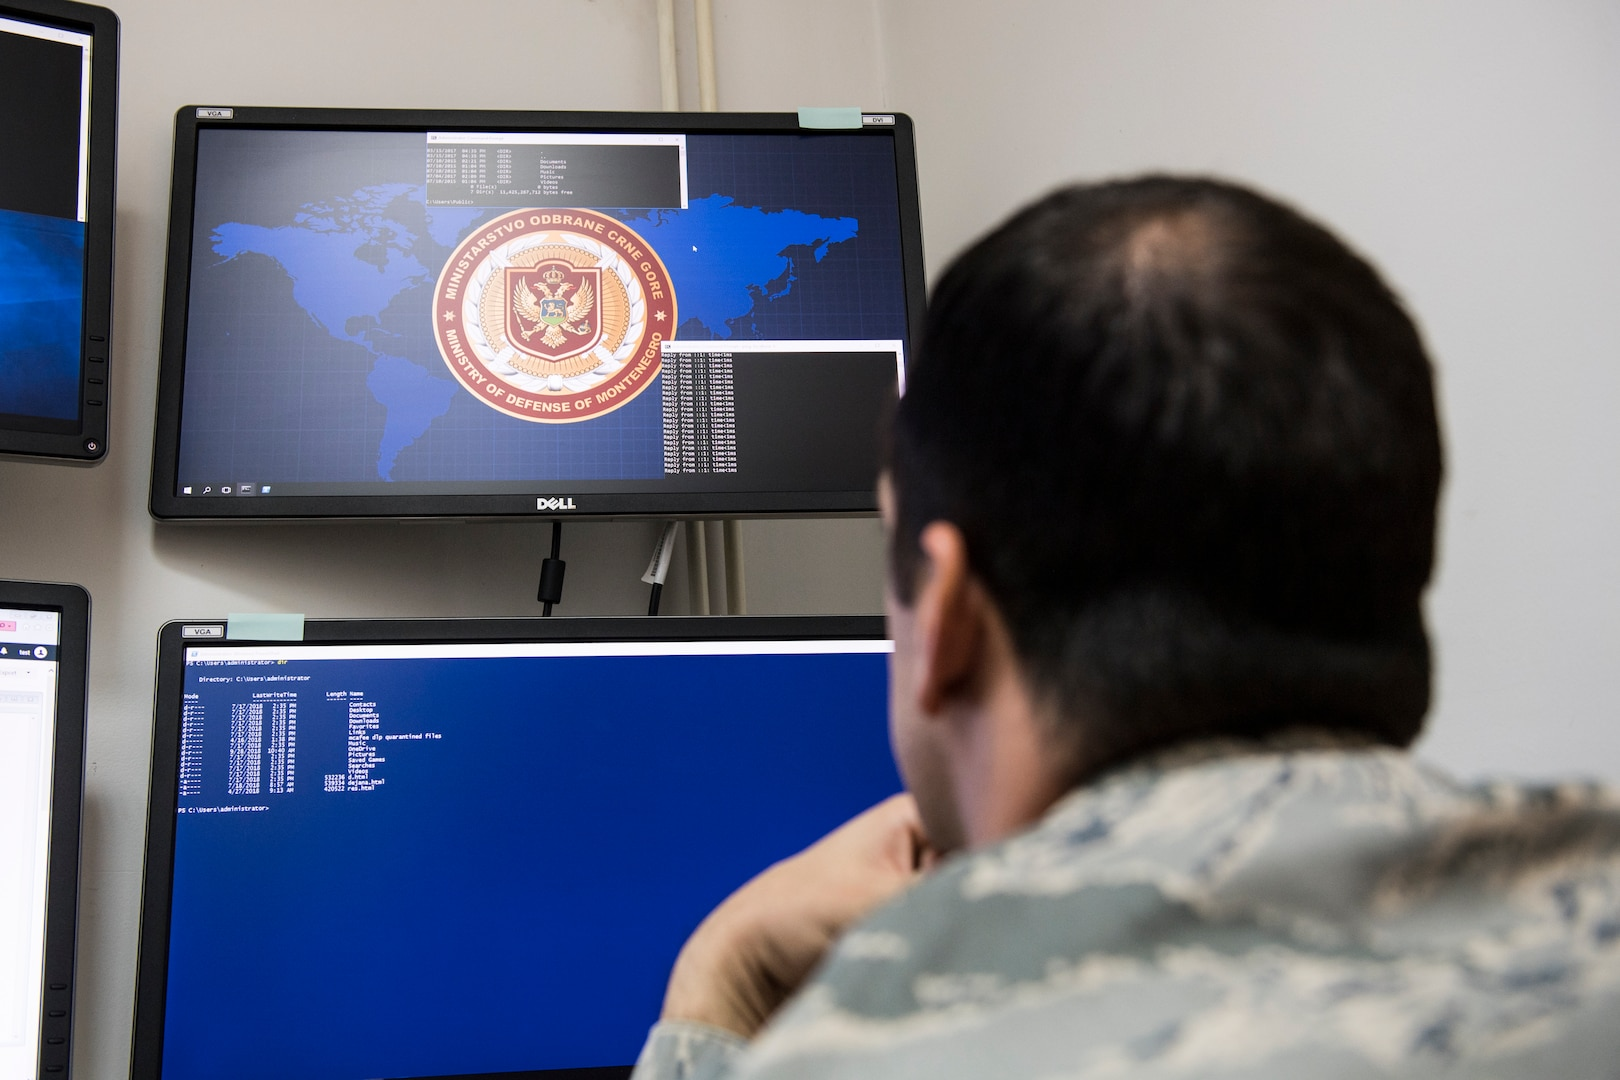 A U.S. Cyber Command Airman reviews simulated cyber threat information during Cyber Defensive Cooperation at Podgorica, Montenegro, Sept. 28, 2018. Defensive cyber cooperation is part of U.S. Cyber Command and U.S. European Command efforts to support NATO allies and European partners by helping build their cyber defense capabilities. This collaboration builds cyber defense capabilities while enabling the teams to learn from one another and demonstrates that we will not tolerate foreign malign influence on the democratic processes of our allies and partners or in the U.S. (U.S. Army photo by Spc. Craig Jensen)